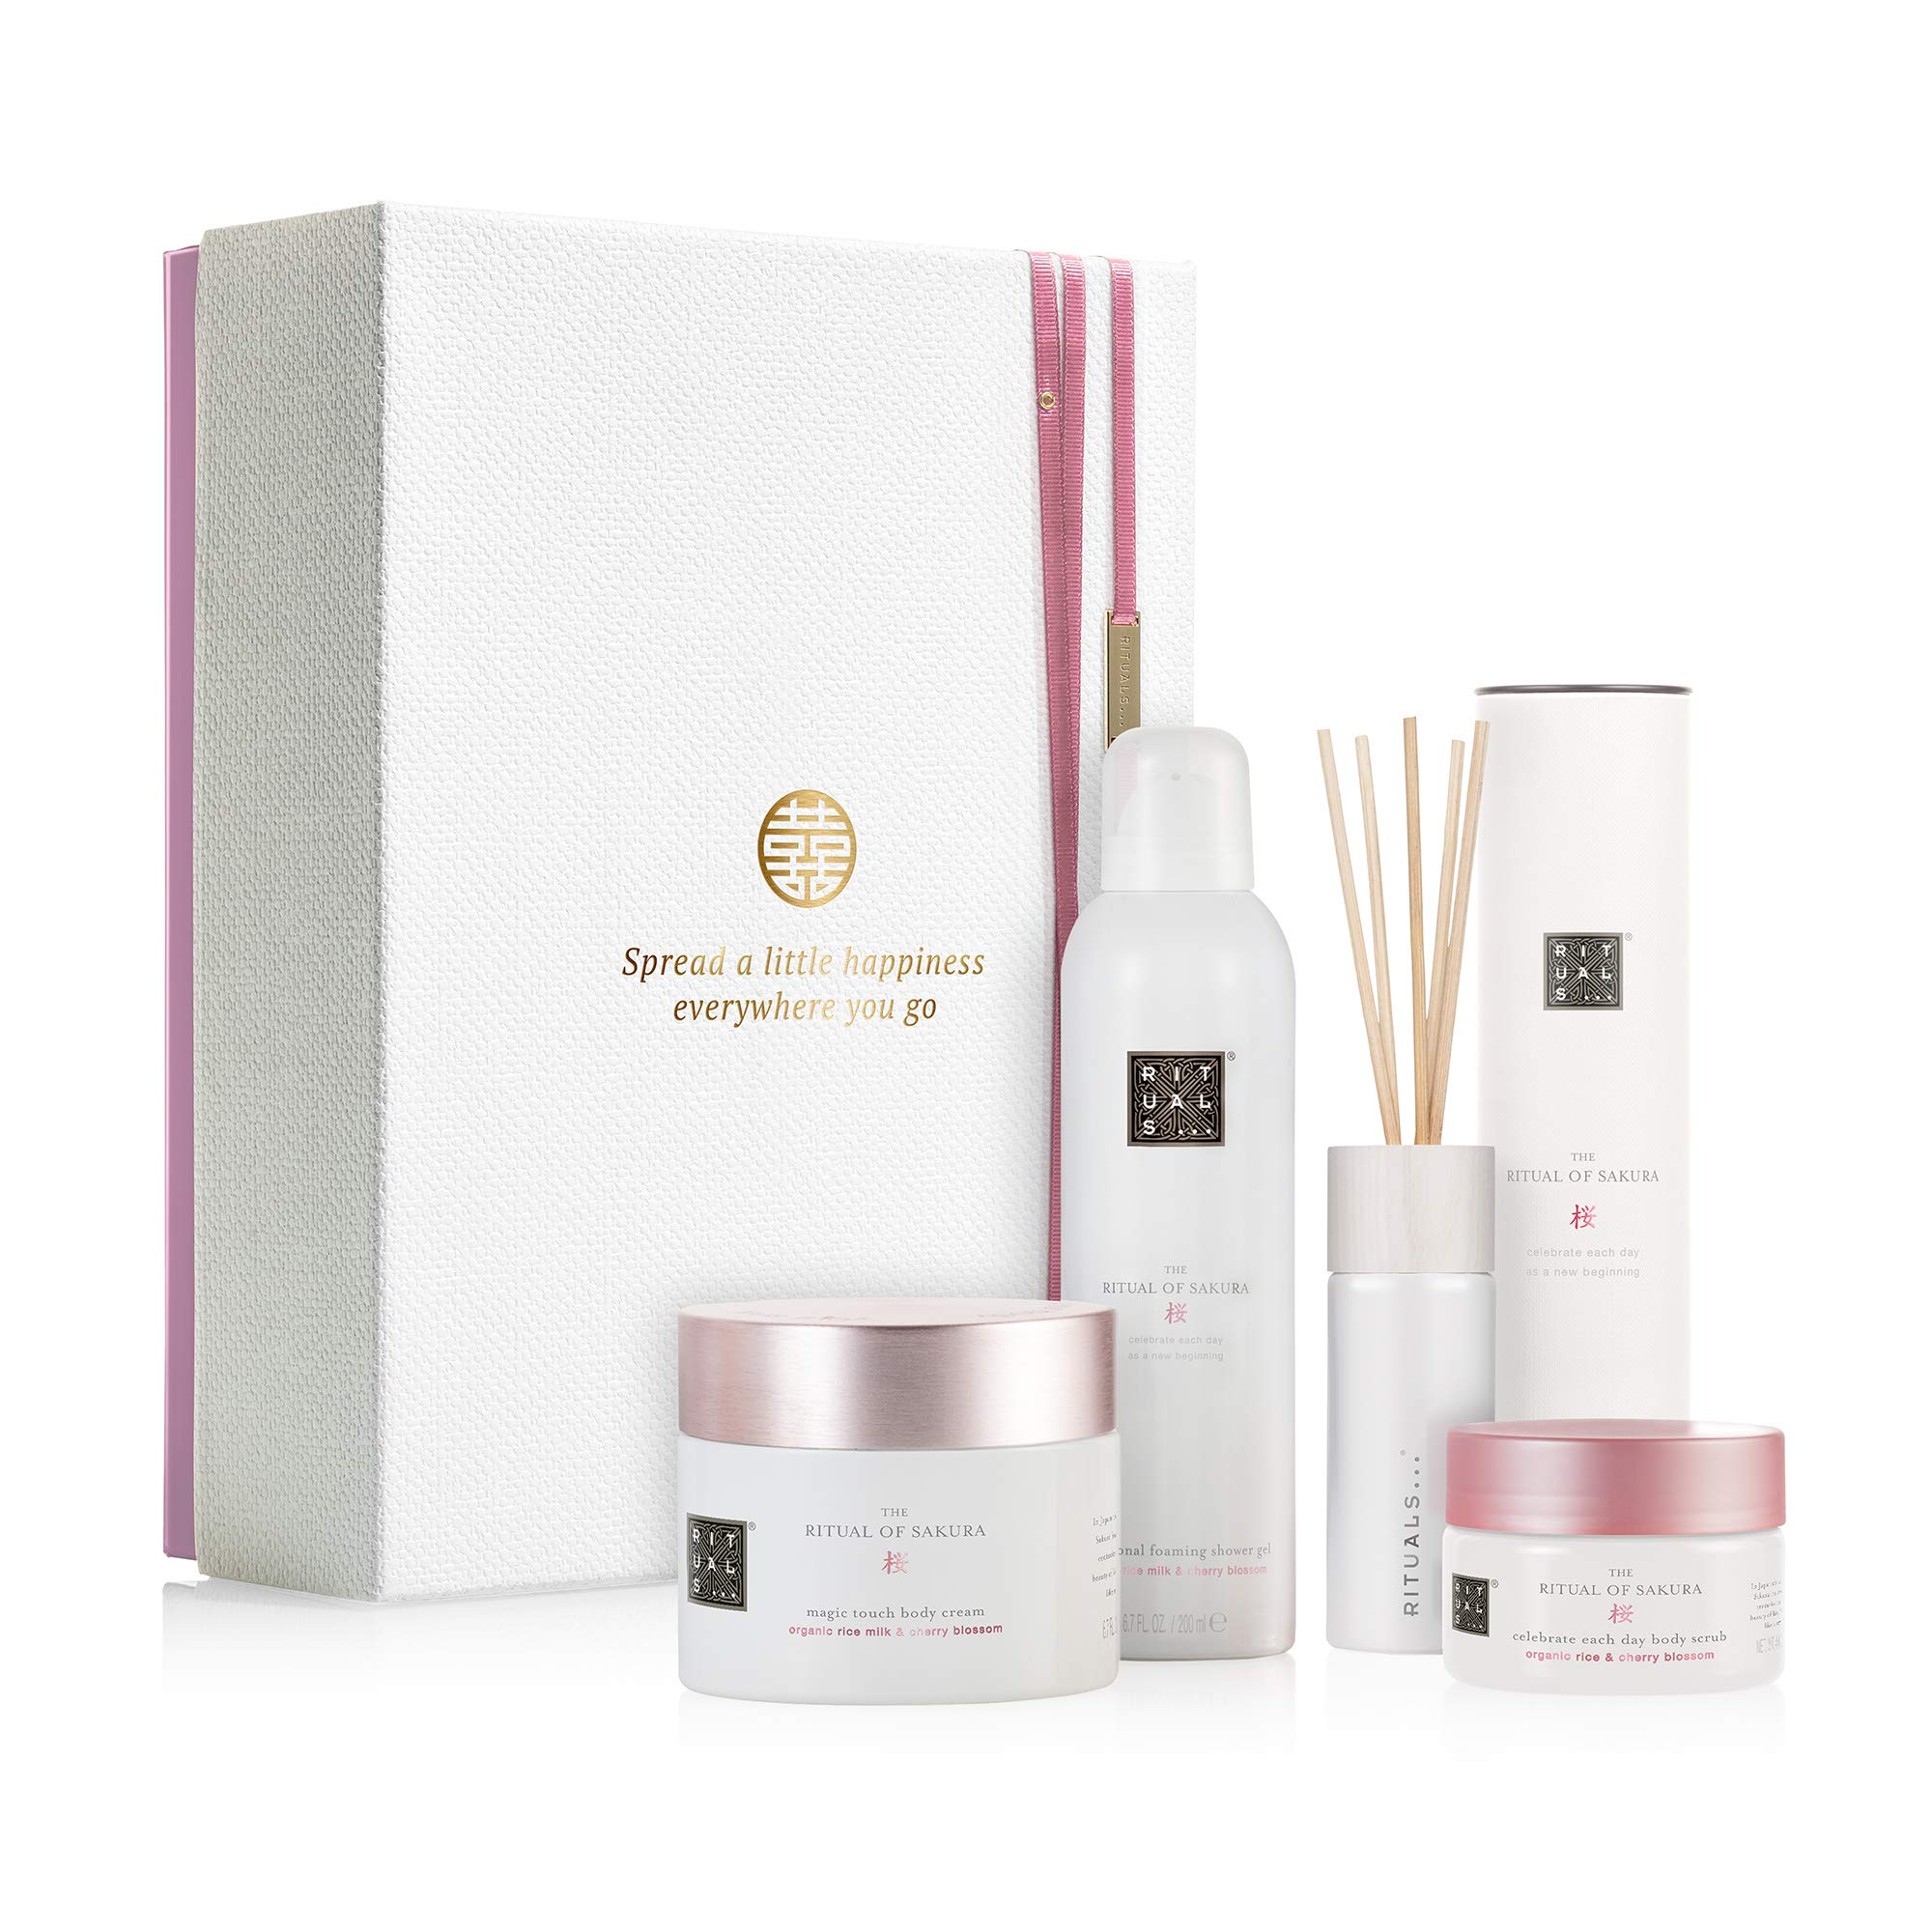 RITUALS The Ritual of Sakura Luxury and Relaxing Beauty Gift Set Large for Women, contains a shower foam, body scrub, body cream and mini fragrance sticks